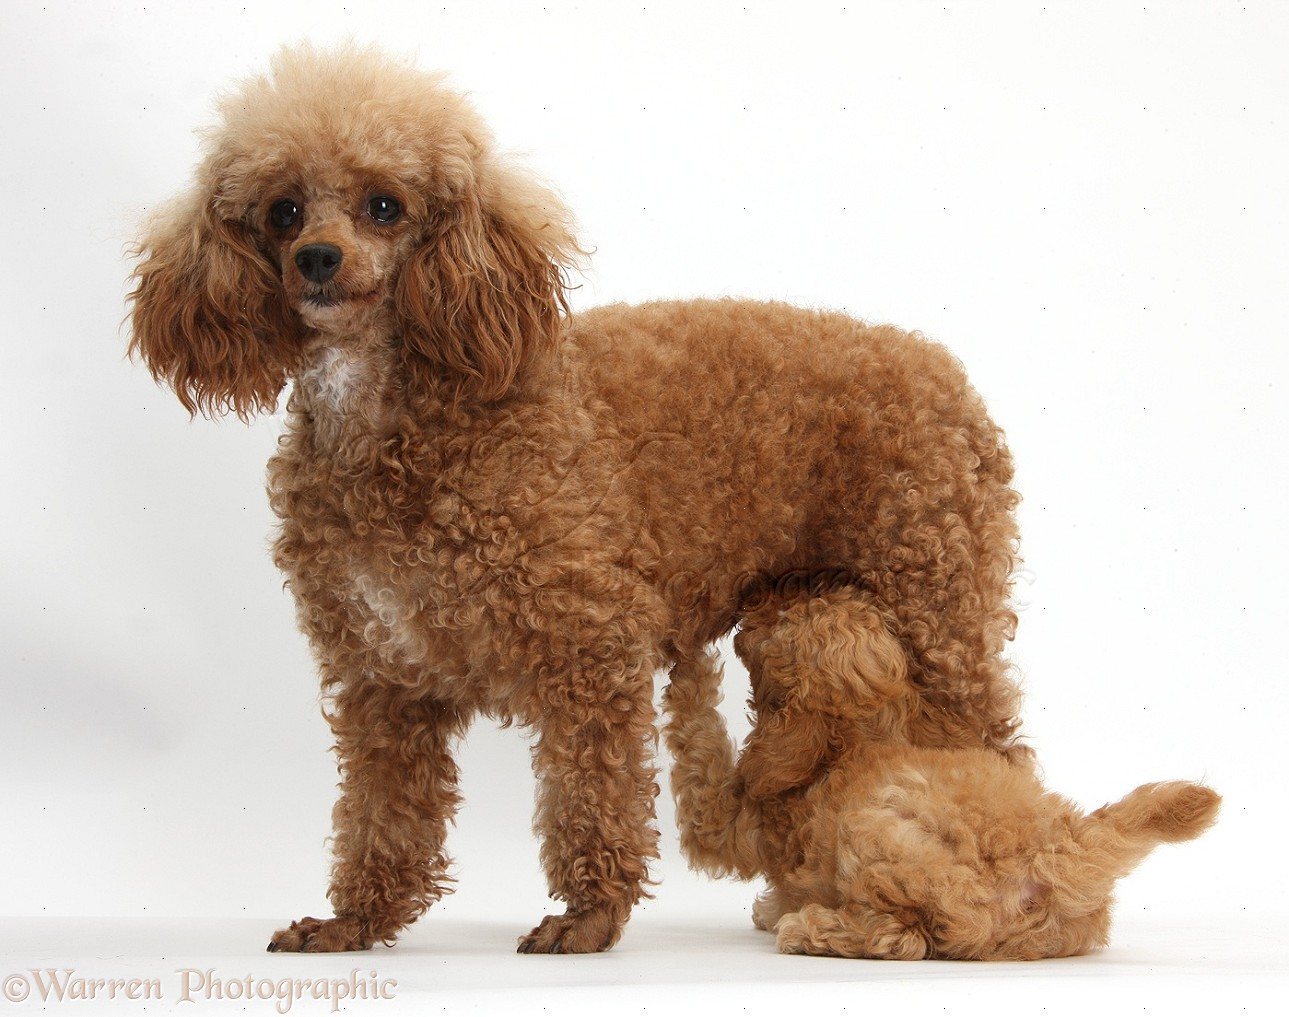 Toy Poodle Puppy Dogs : Dogs red toy poodle puppy suckling its mother photo wp